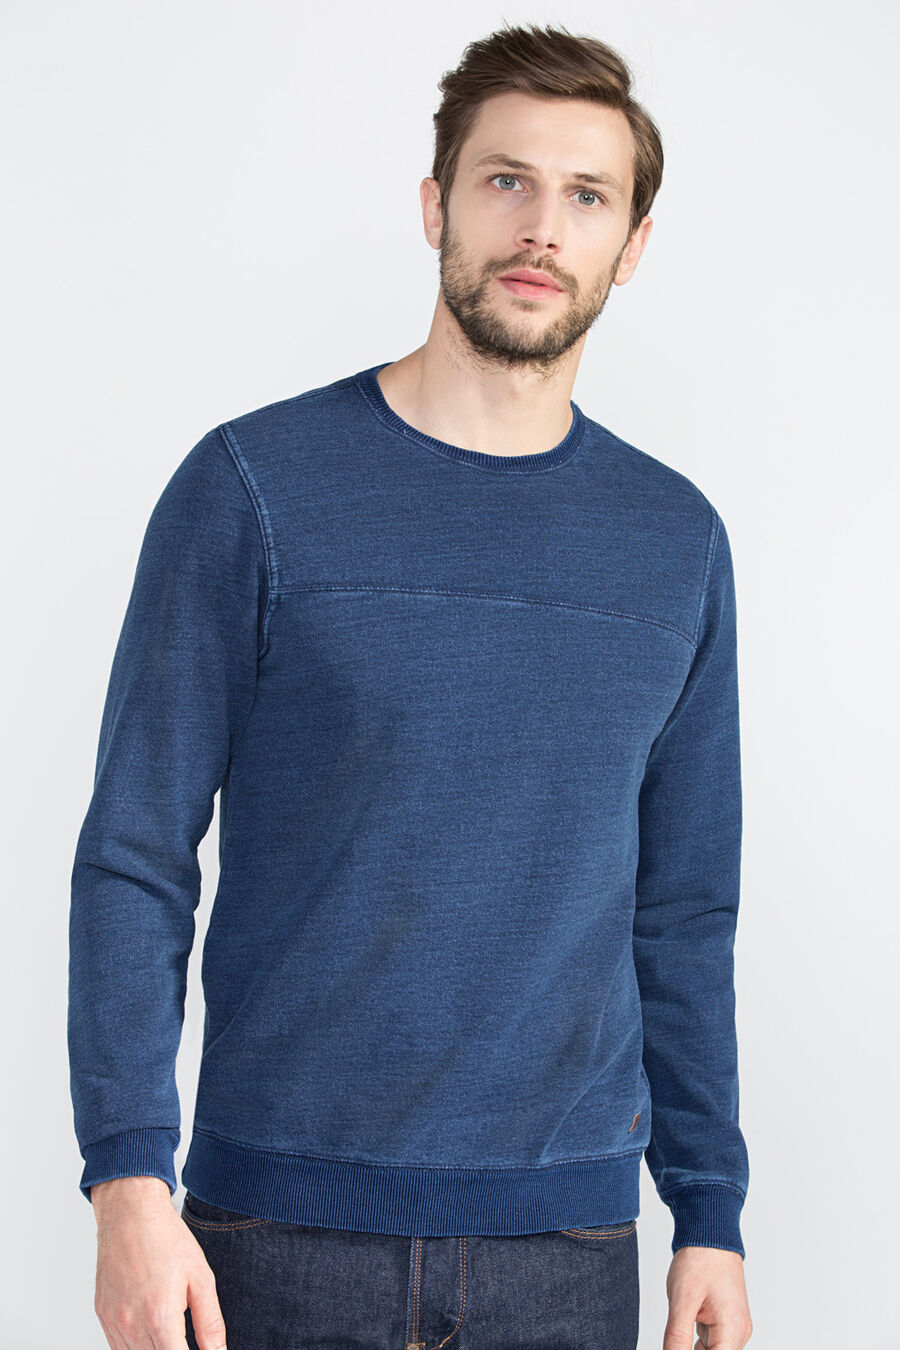 Sweatshirt with styling